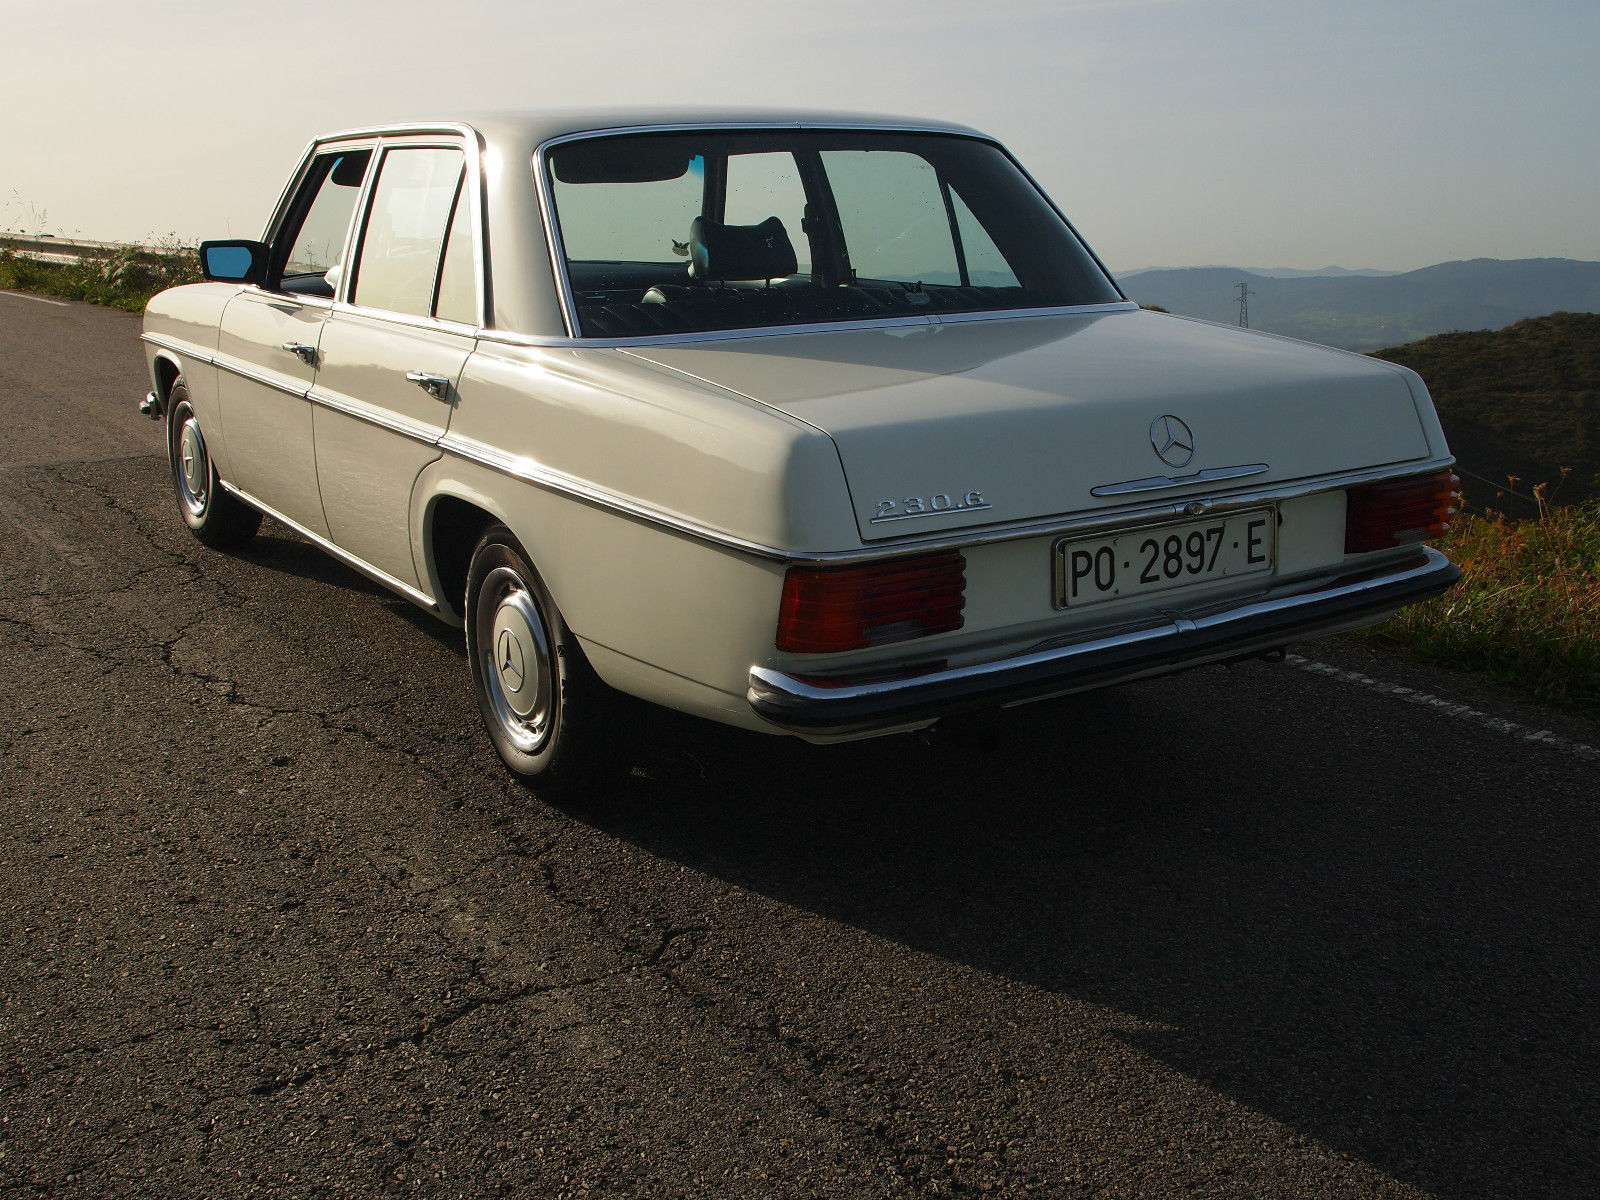 Mercedes benz w114 230 6 1975 for sale in oviedo spain for Mercedes benz 230 for sale